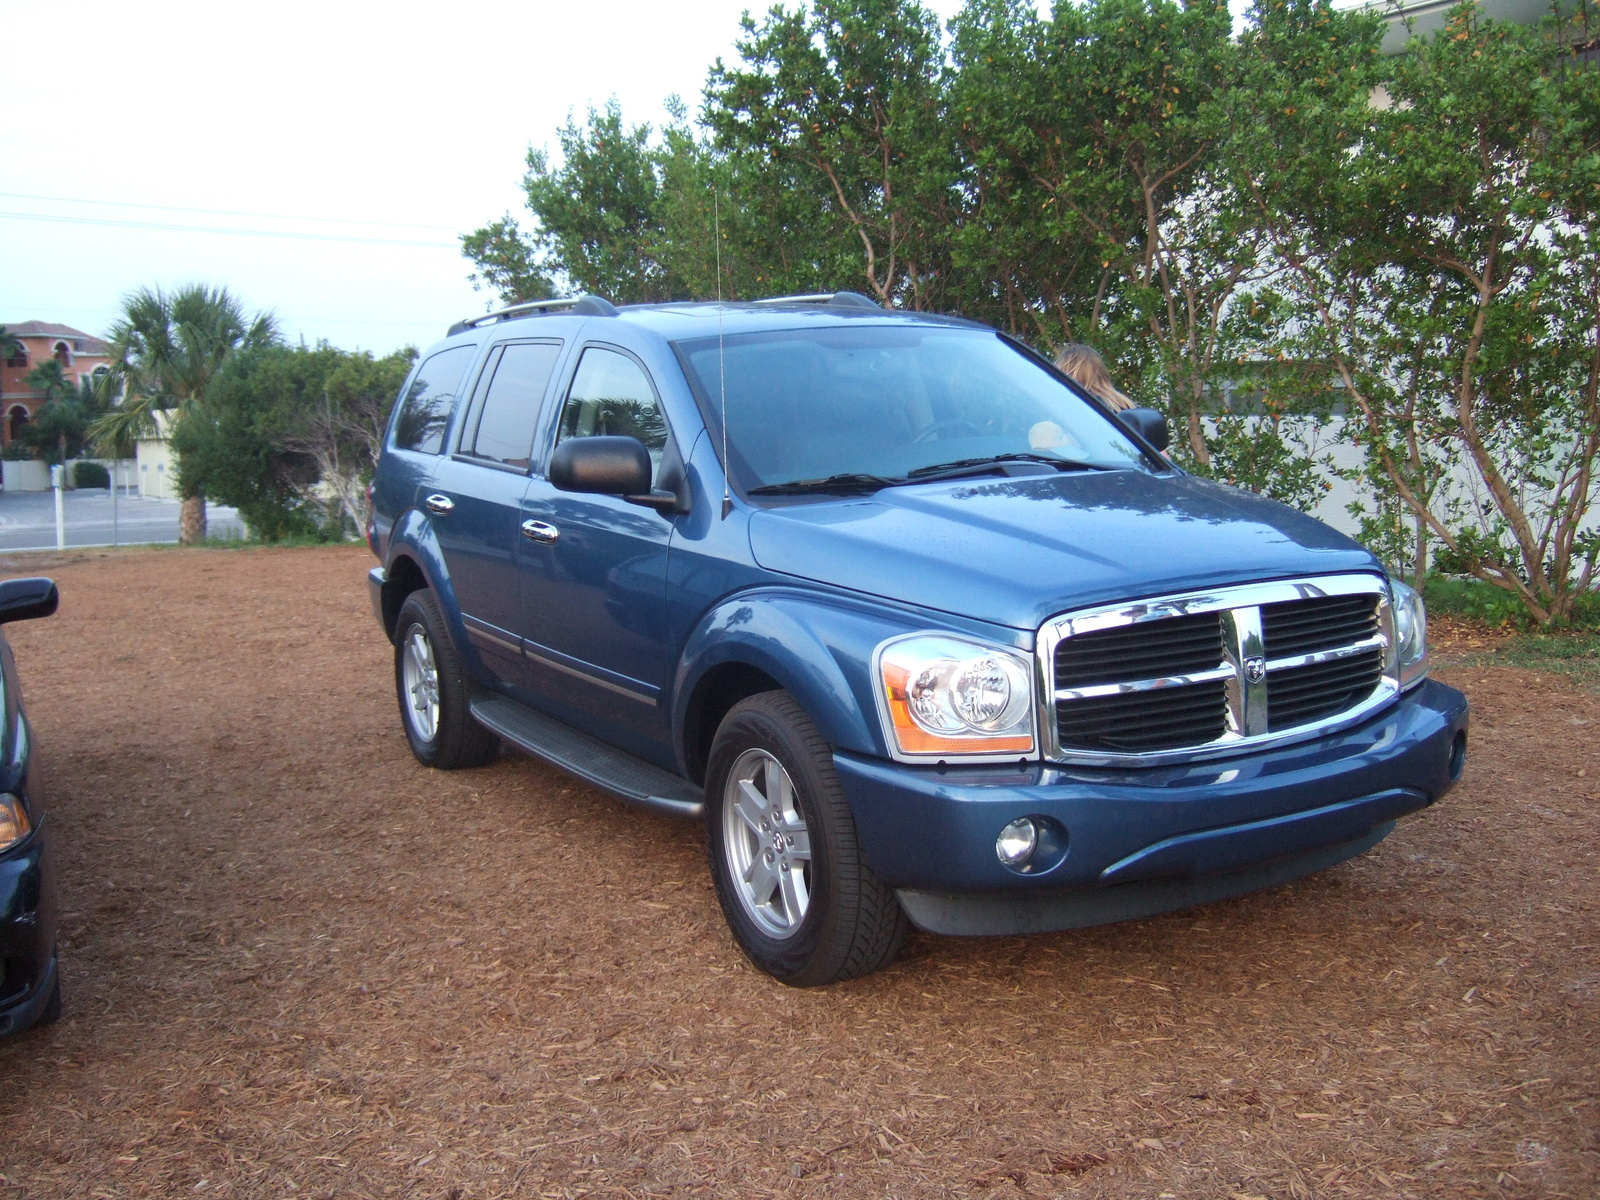 2006 Dodge Durango Limited 4WD picture